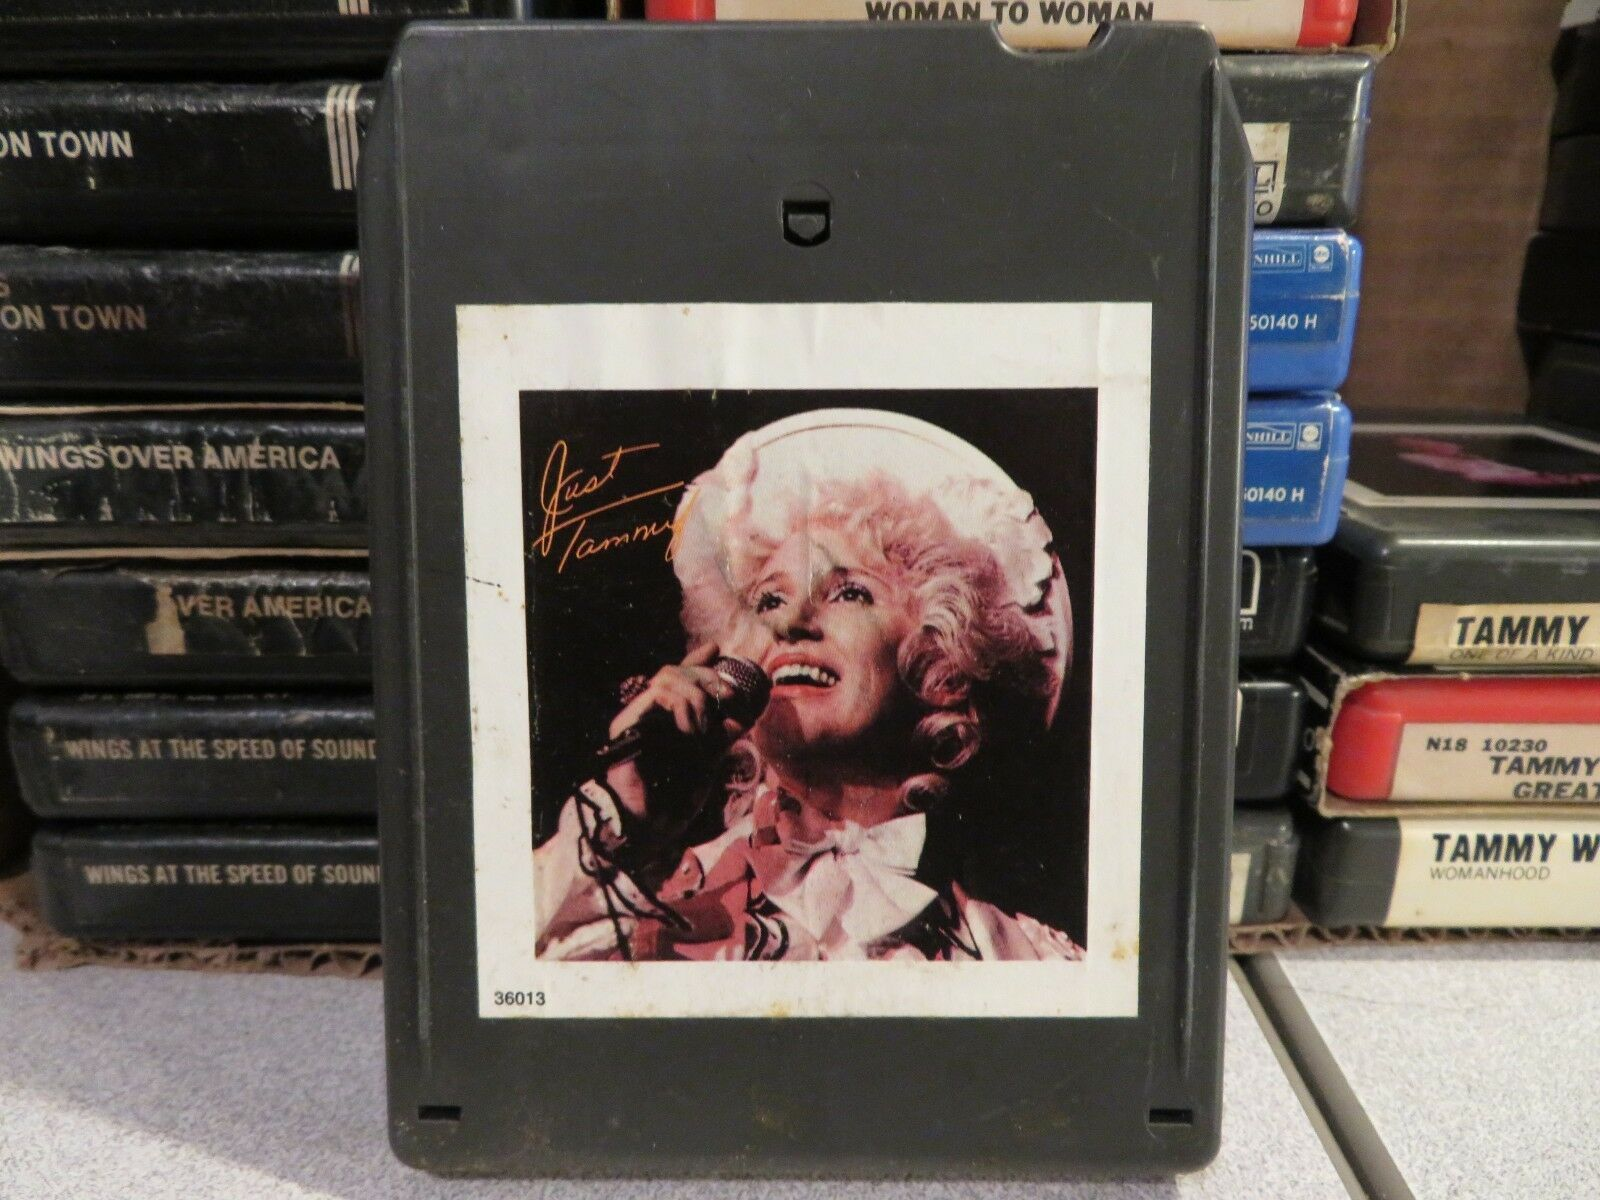 Primary image for TAMMY WYNETTE Just Tammy (8-Track Tape)